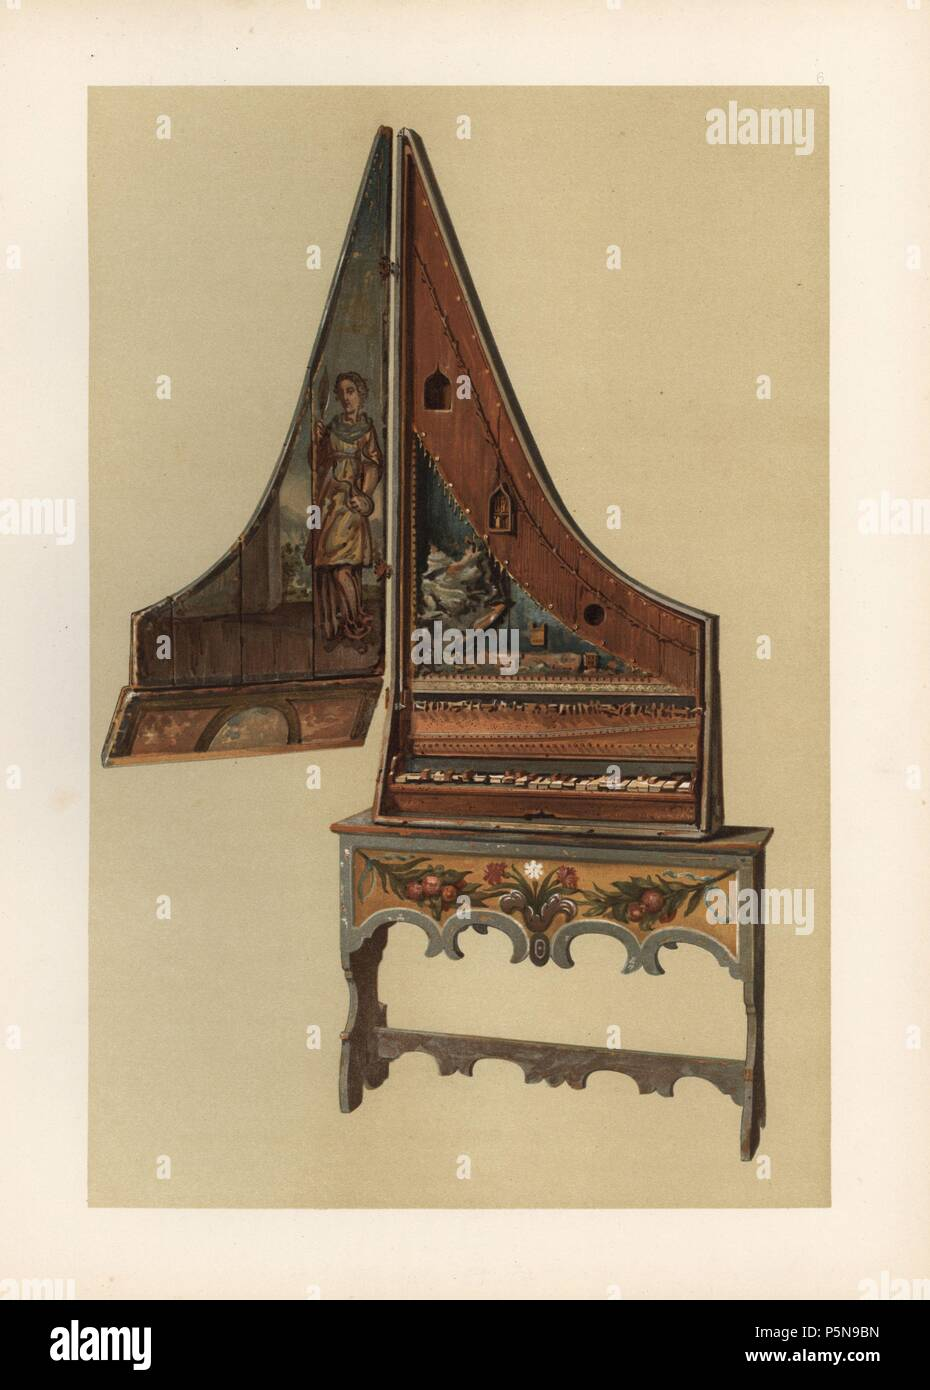 Clavicytherium or upright spinnet formely owned by Count Correr of Venice. Probably of Italian or German manufacture from circa 1500. Chromolithograph from an illustration by William Gibb from A.J. Hipkins' 'Musical Instruments, Historic, Rare and Unique,' Adam and Charles Black, Edinburgh, 1888. Alfred James Hipkins (1826-1903) was an English musicologist who specialized in the history of the pianoforte and other instruments. William Gibb was a master illustrator and chromolithographer and illustrated 'The Royal House of Stuart' (1890), 'Naval and Military Trophies' (1896), and others. - Stock Image